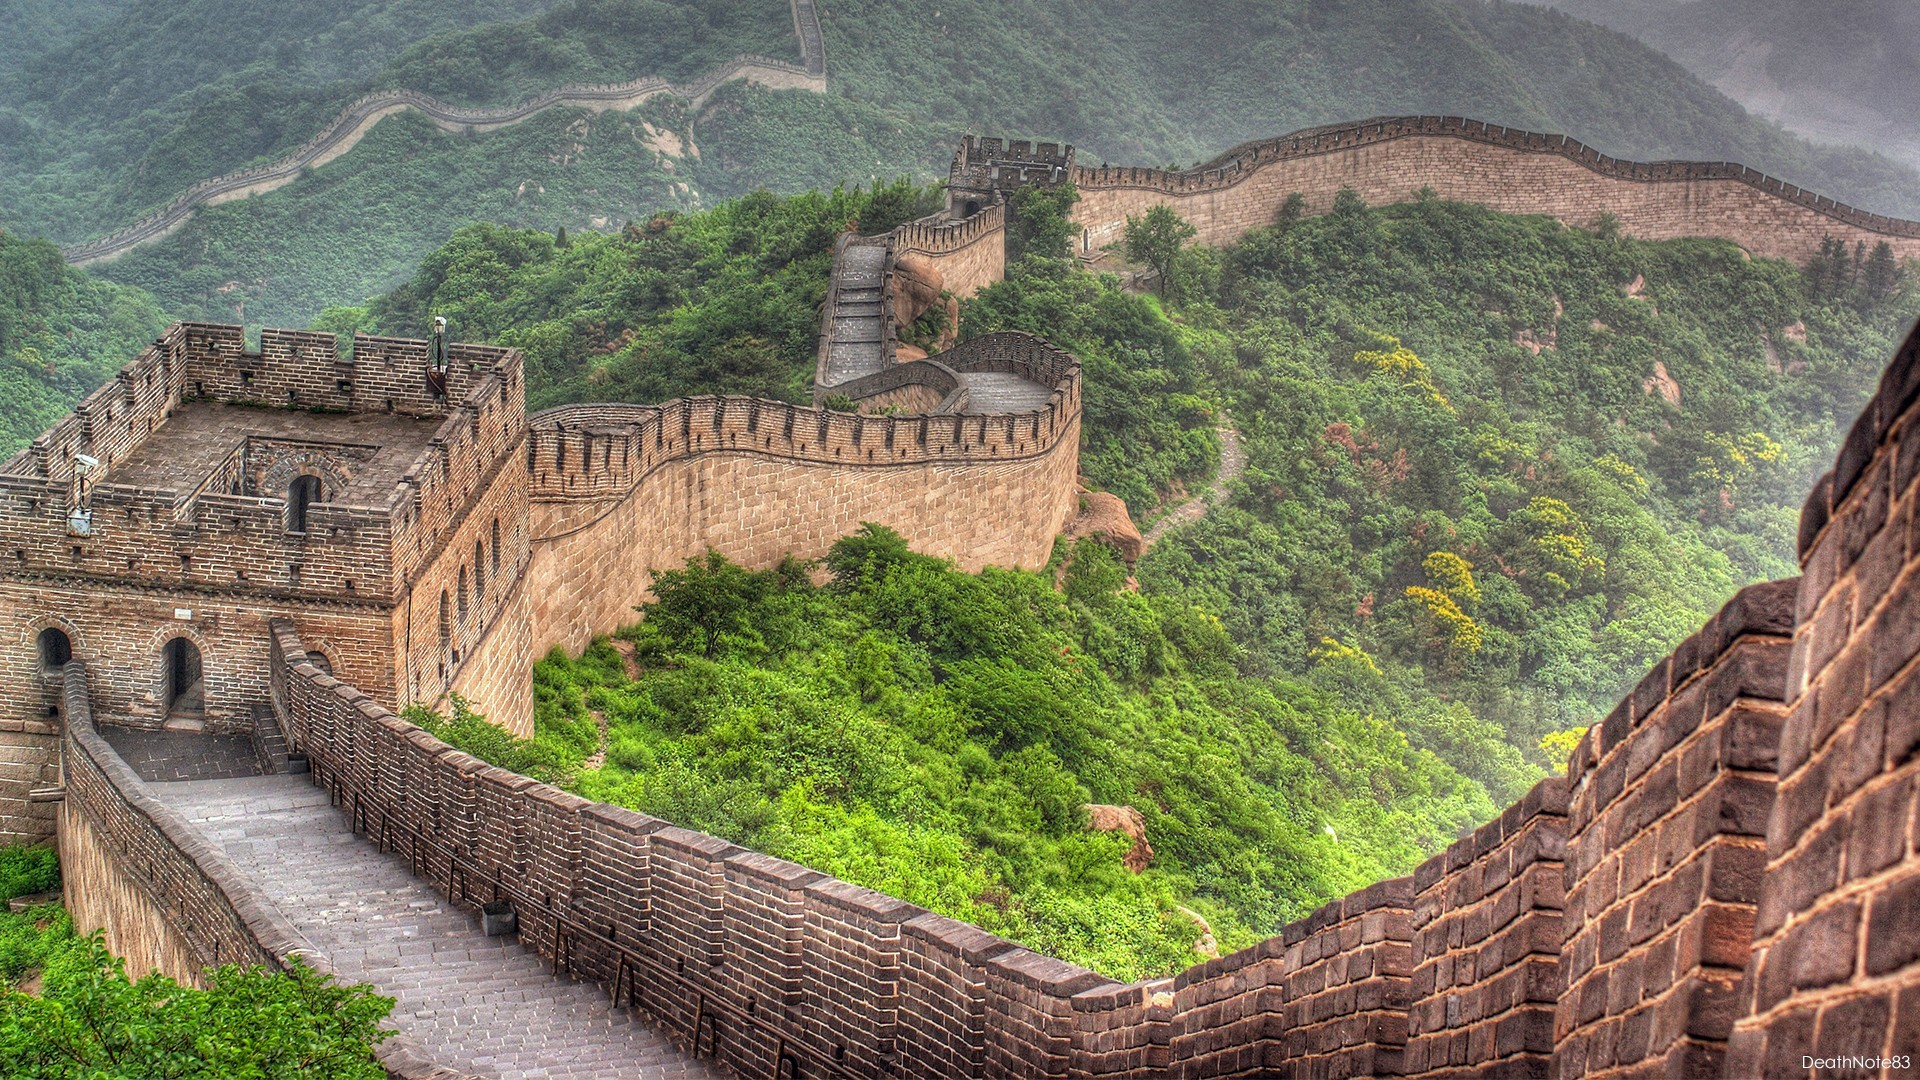 The Great Wall of China Wallpaper 51 images 1920x1080